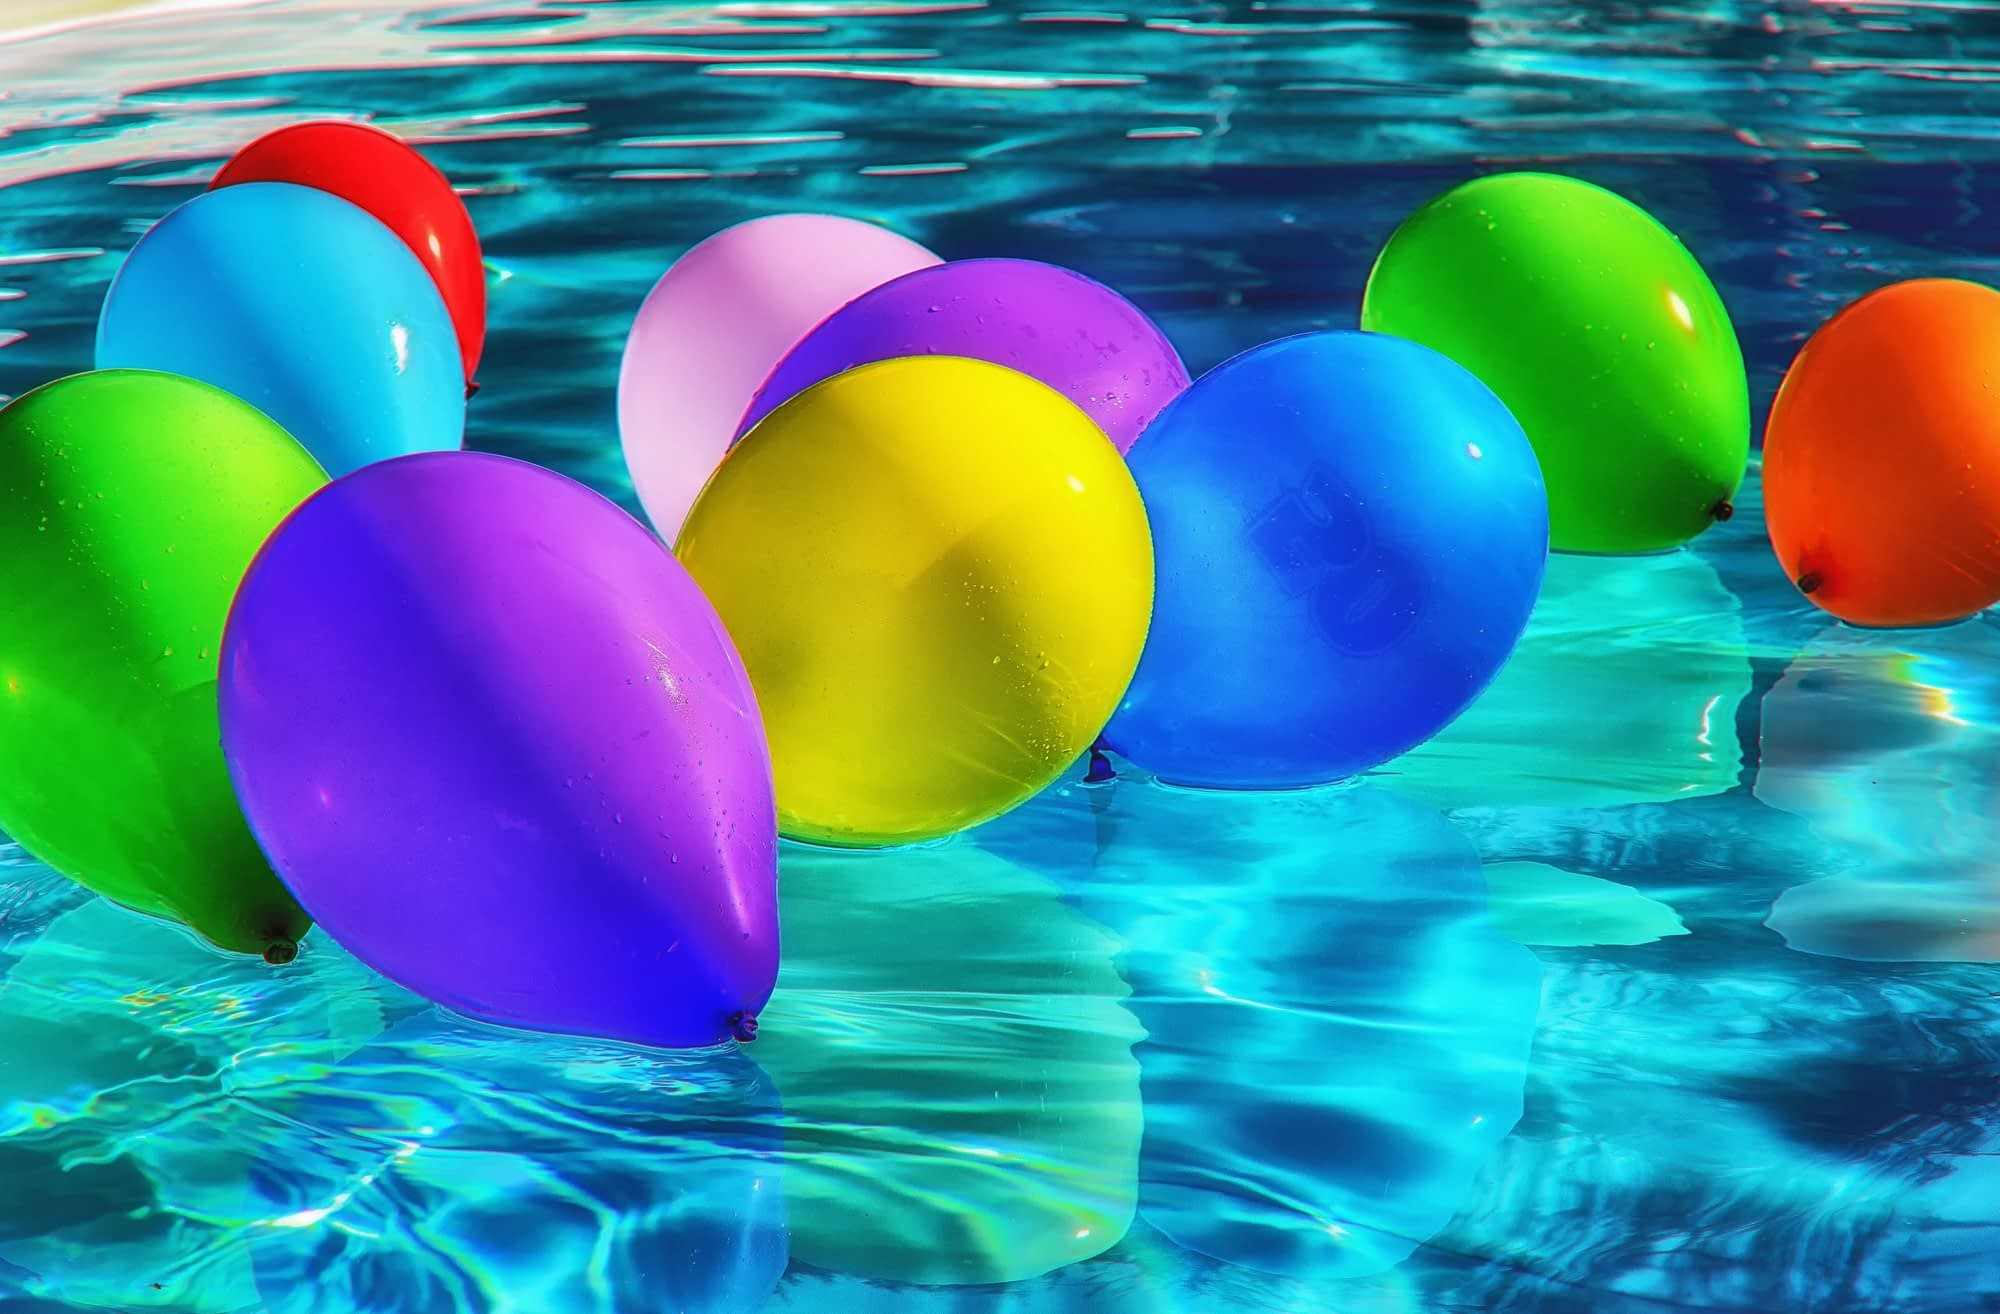 Balloons floating on the water